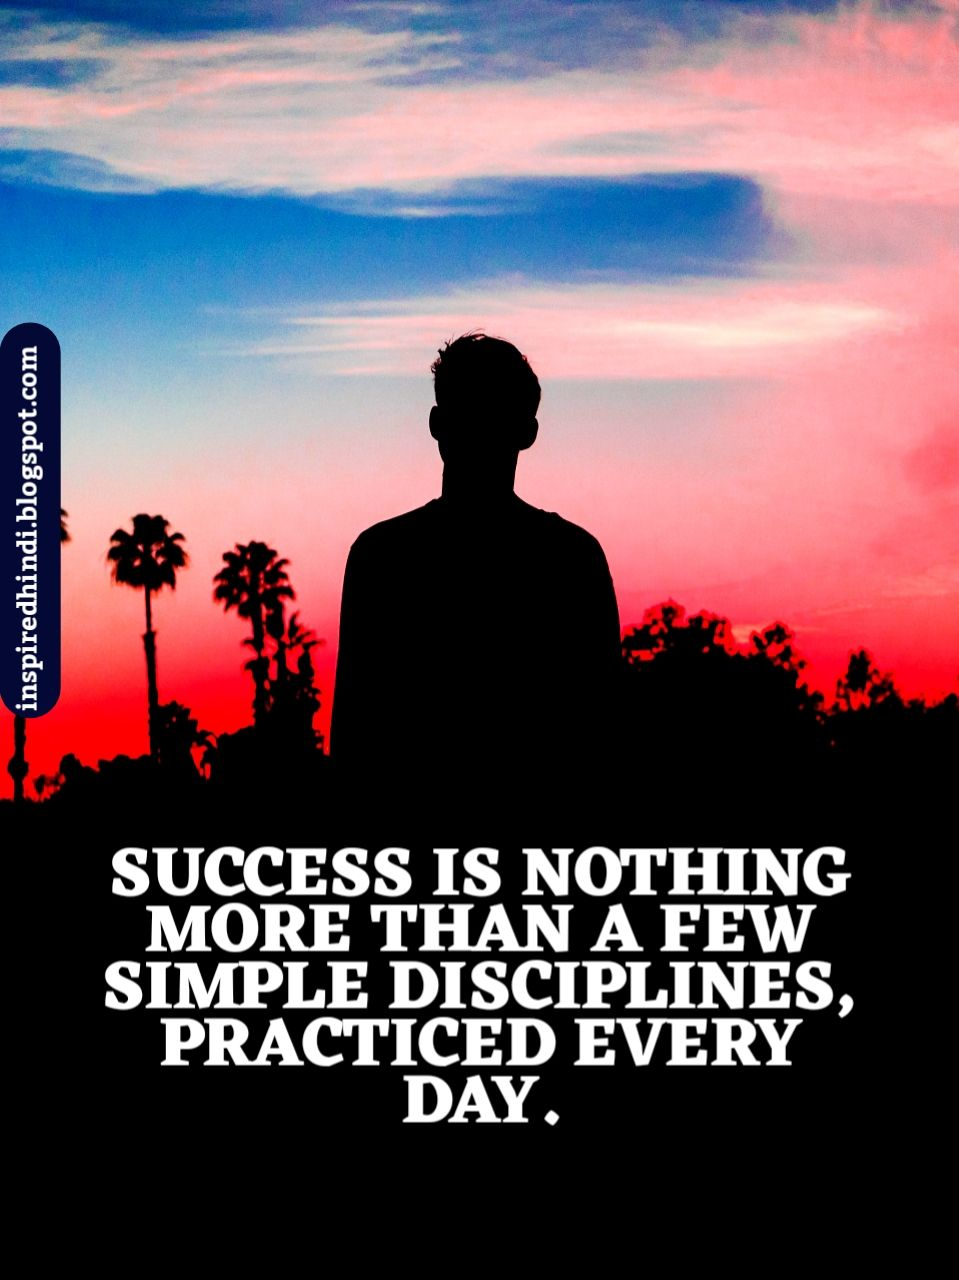 13 Motivational And Life Quotes In English Motivational Quotes For Kids Motivational Quotes For Students Best Motivational Quotes